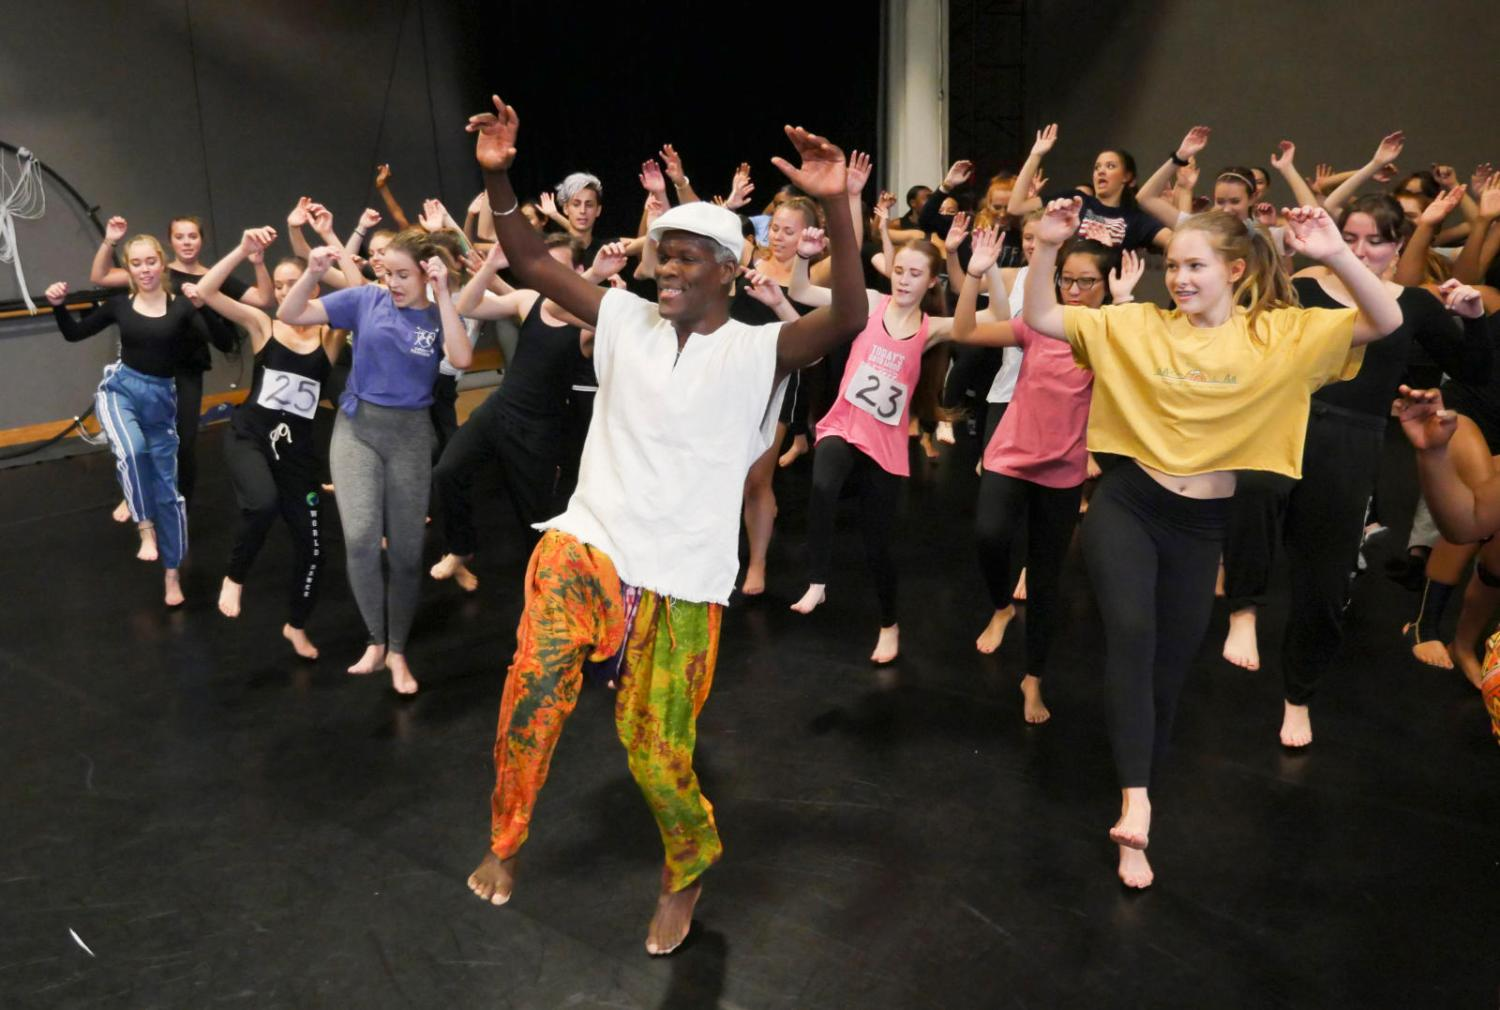 Nii Armah Sowah works with area dancers during High School Dance Day in the Theatre & Dance department at the University of Colorado Boulder. (Photo by Casey A. Cass/University of Colorado)